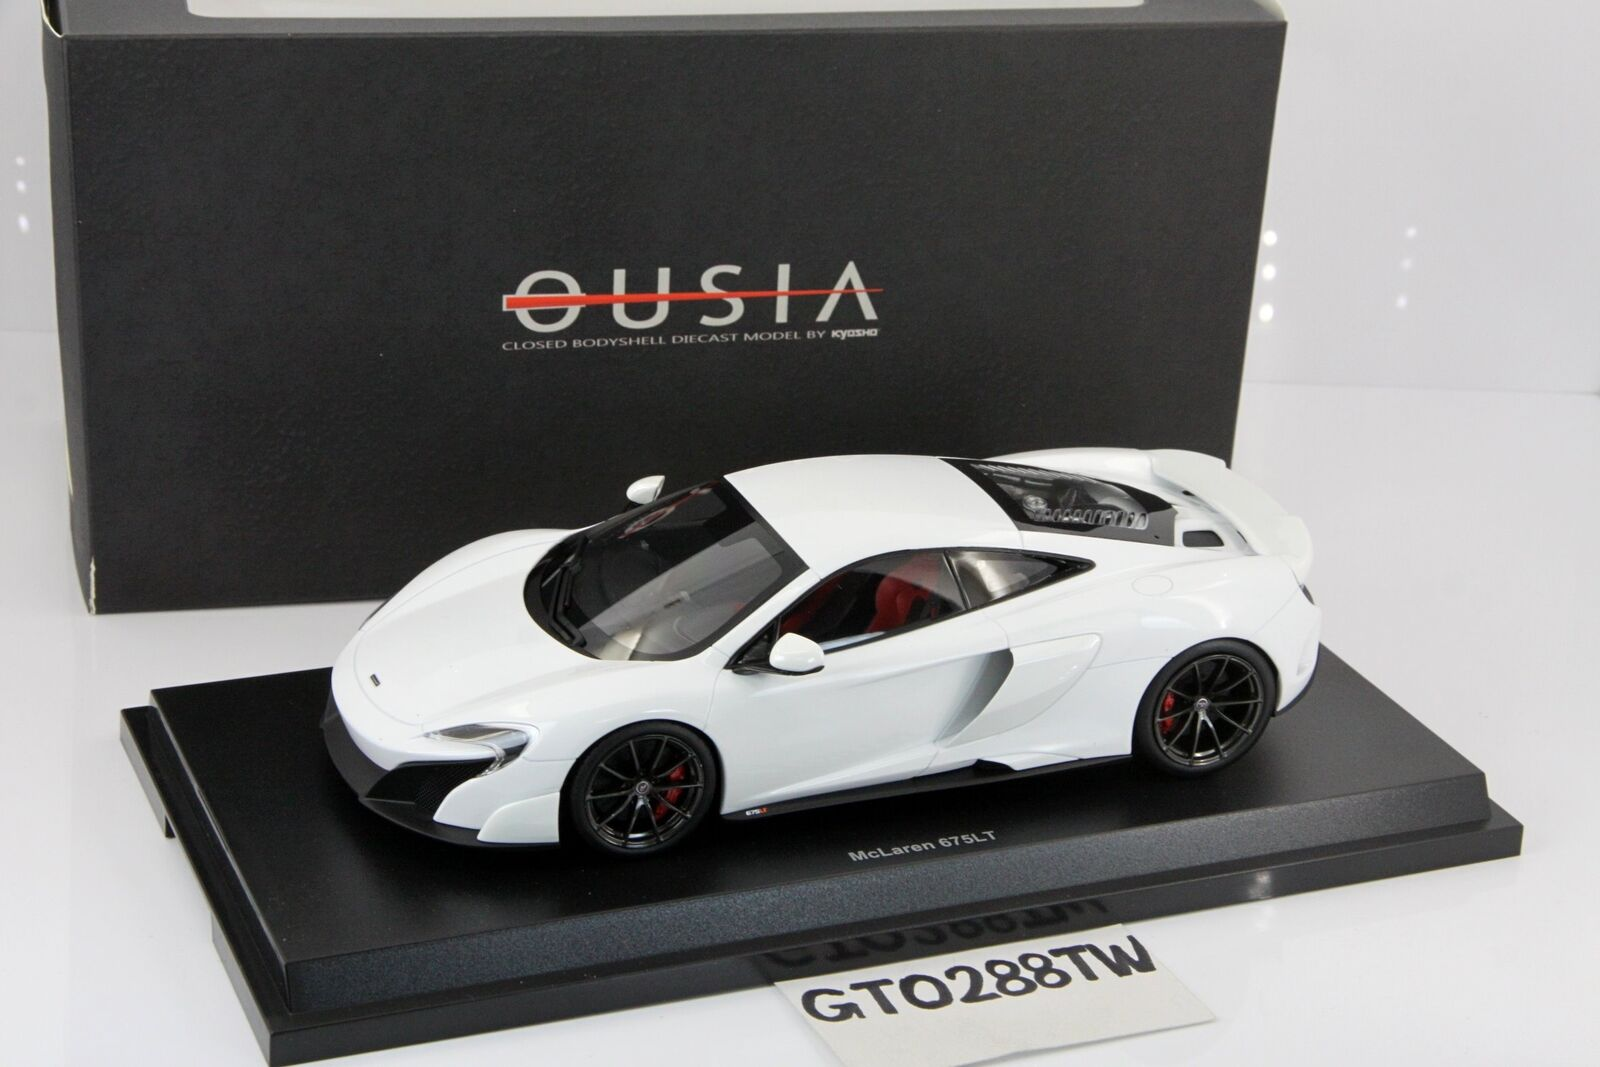 Kyosho Ousia 1 18 Scale McLAREN 675LT Diecast Model-Blanc (09541 W)